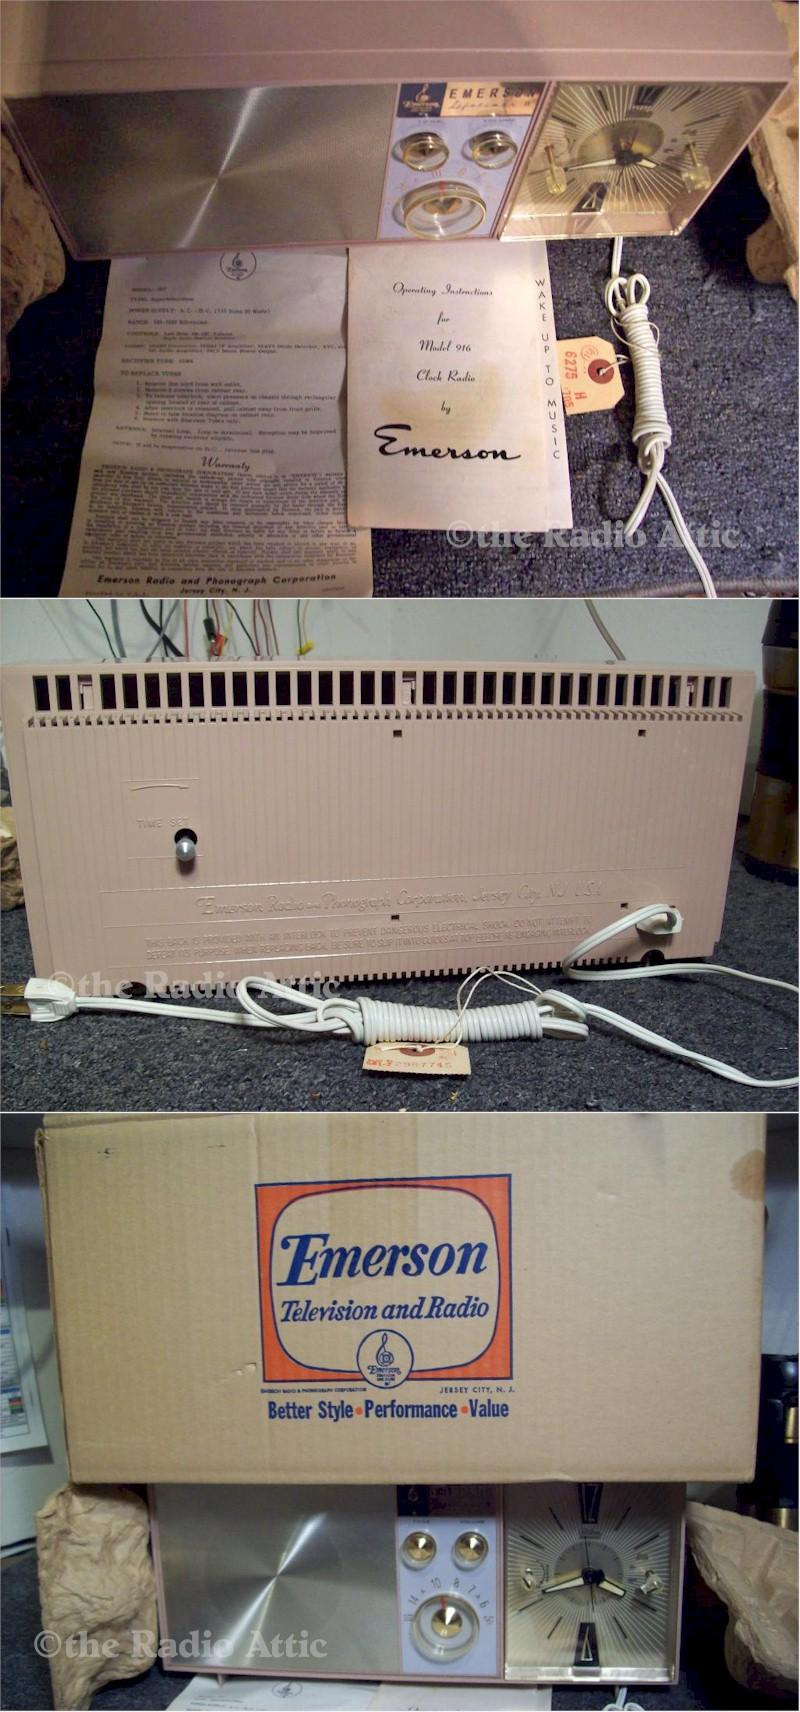 Emerson G1705 Clock Radio